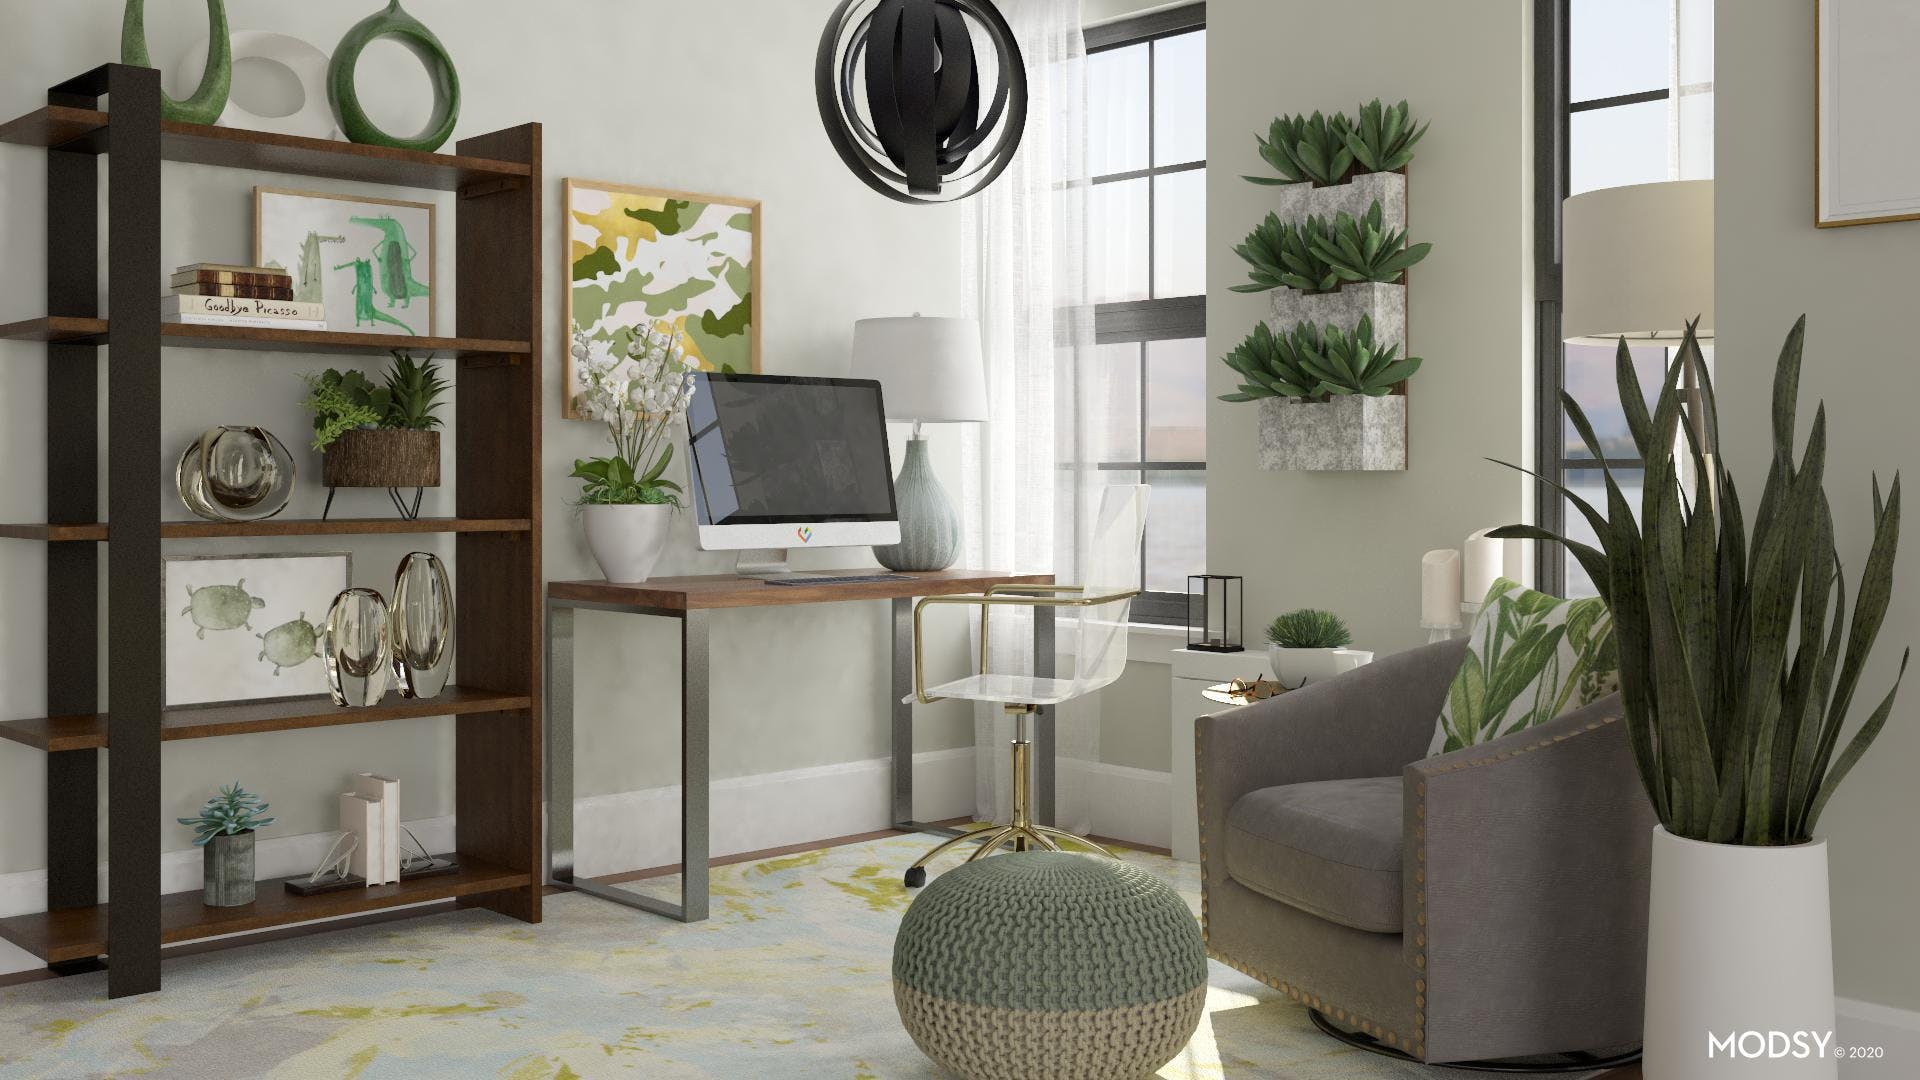 Greenery Brings Office to Life